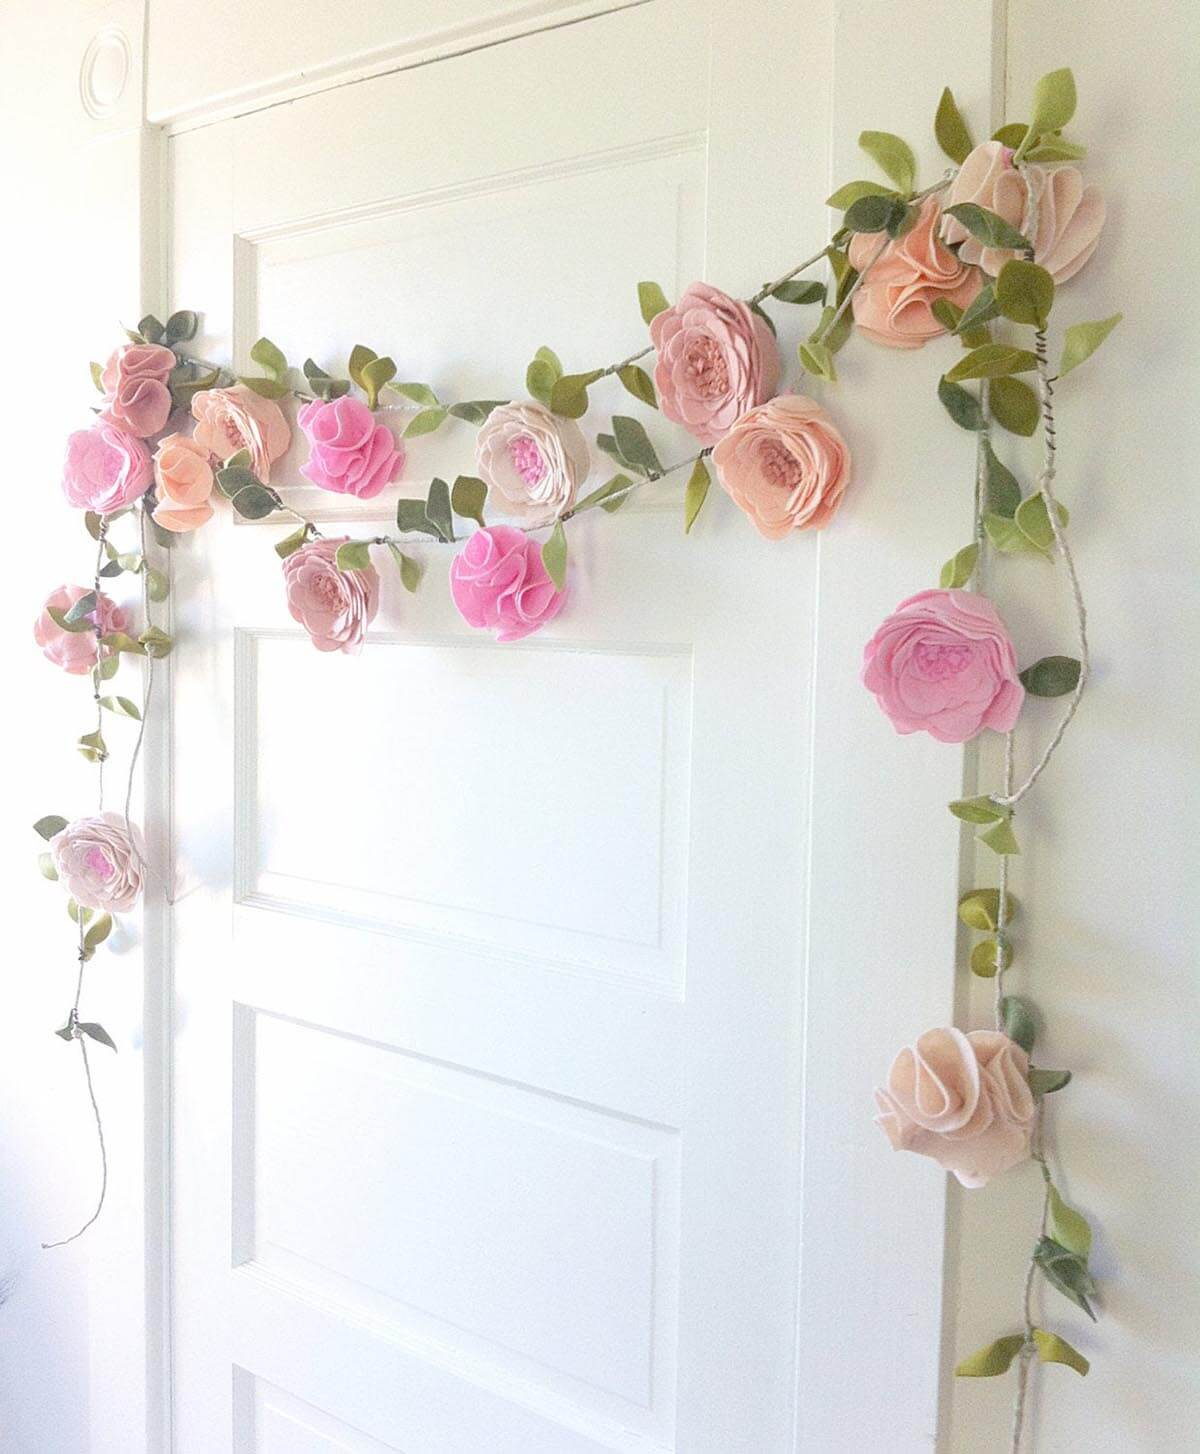 Whimsical Garland with Felt Flowers